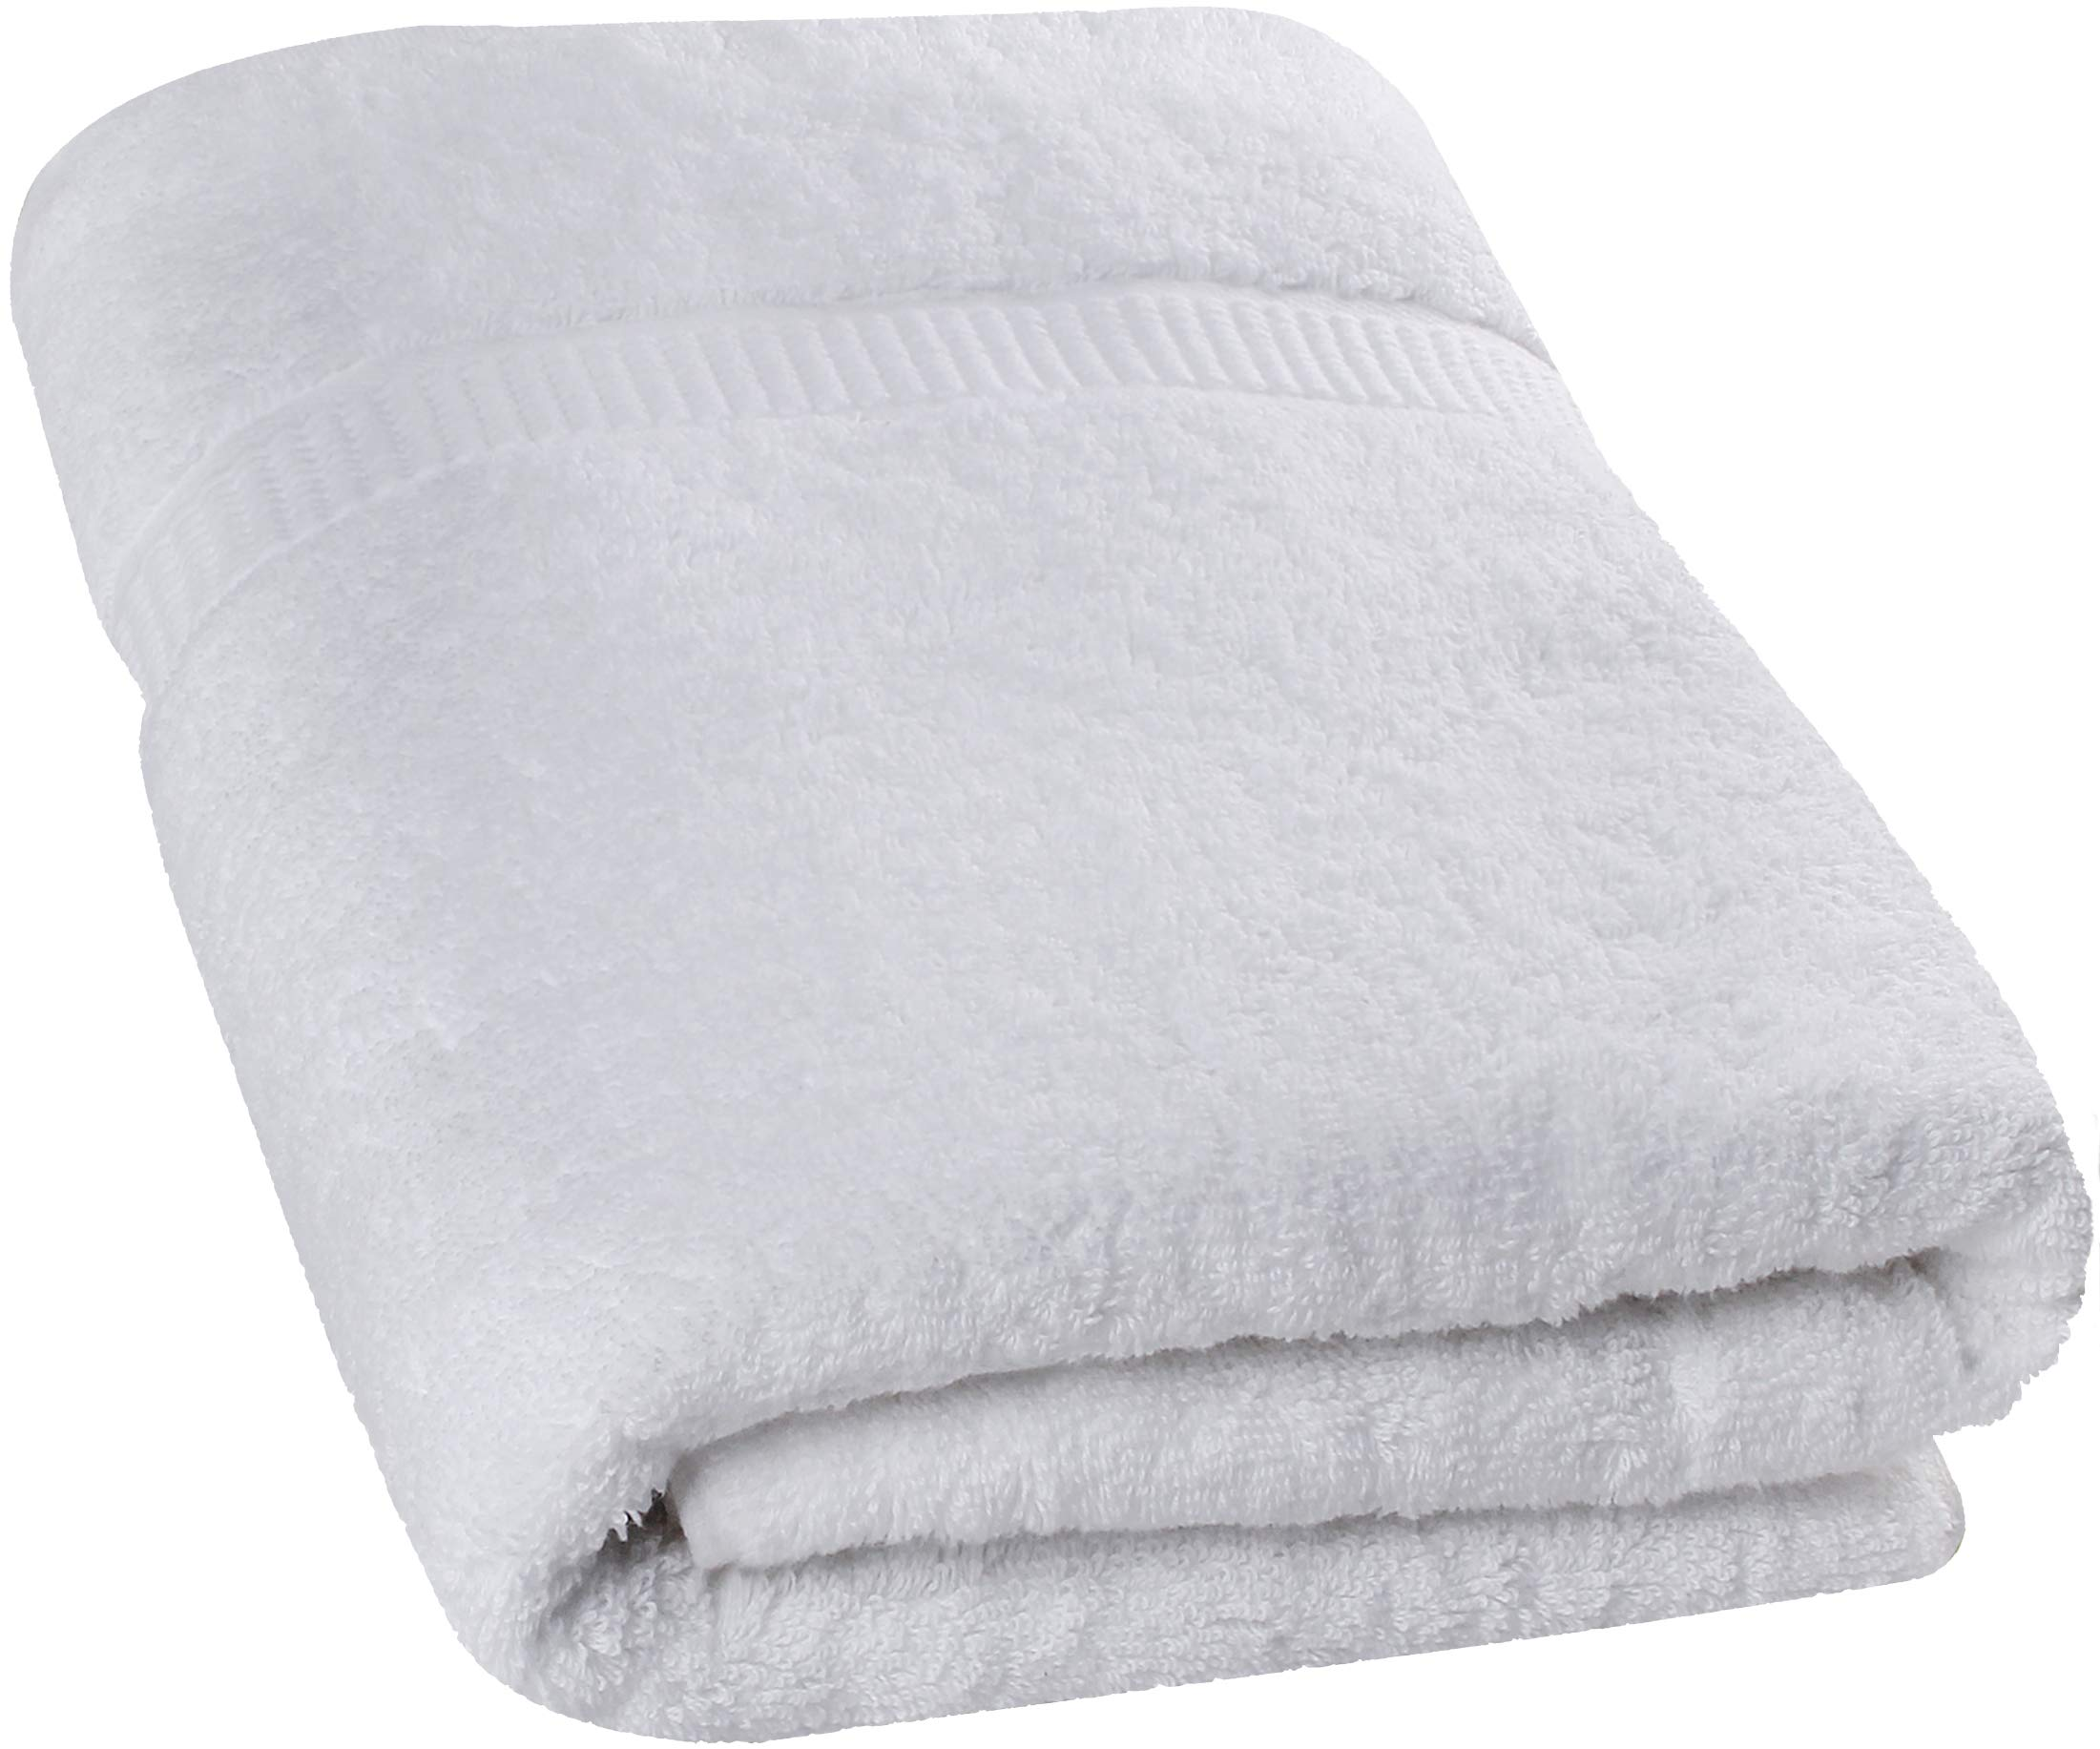 Utopia Towels Soft Cotton Machine Washable Extra Large 35 Inch By 70